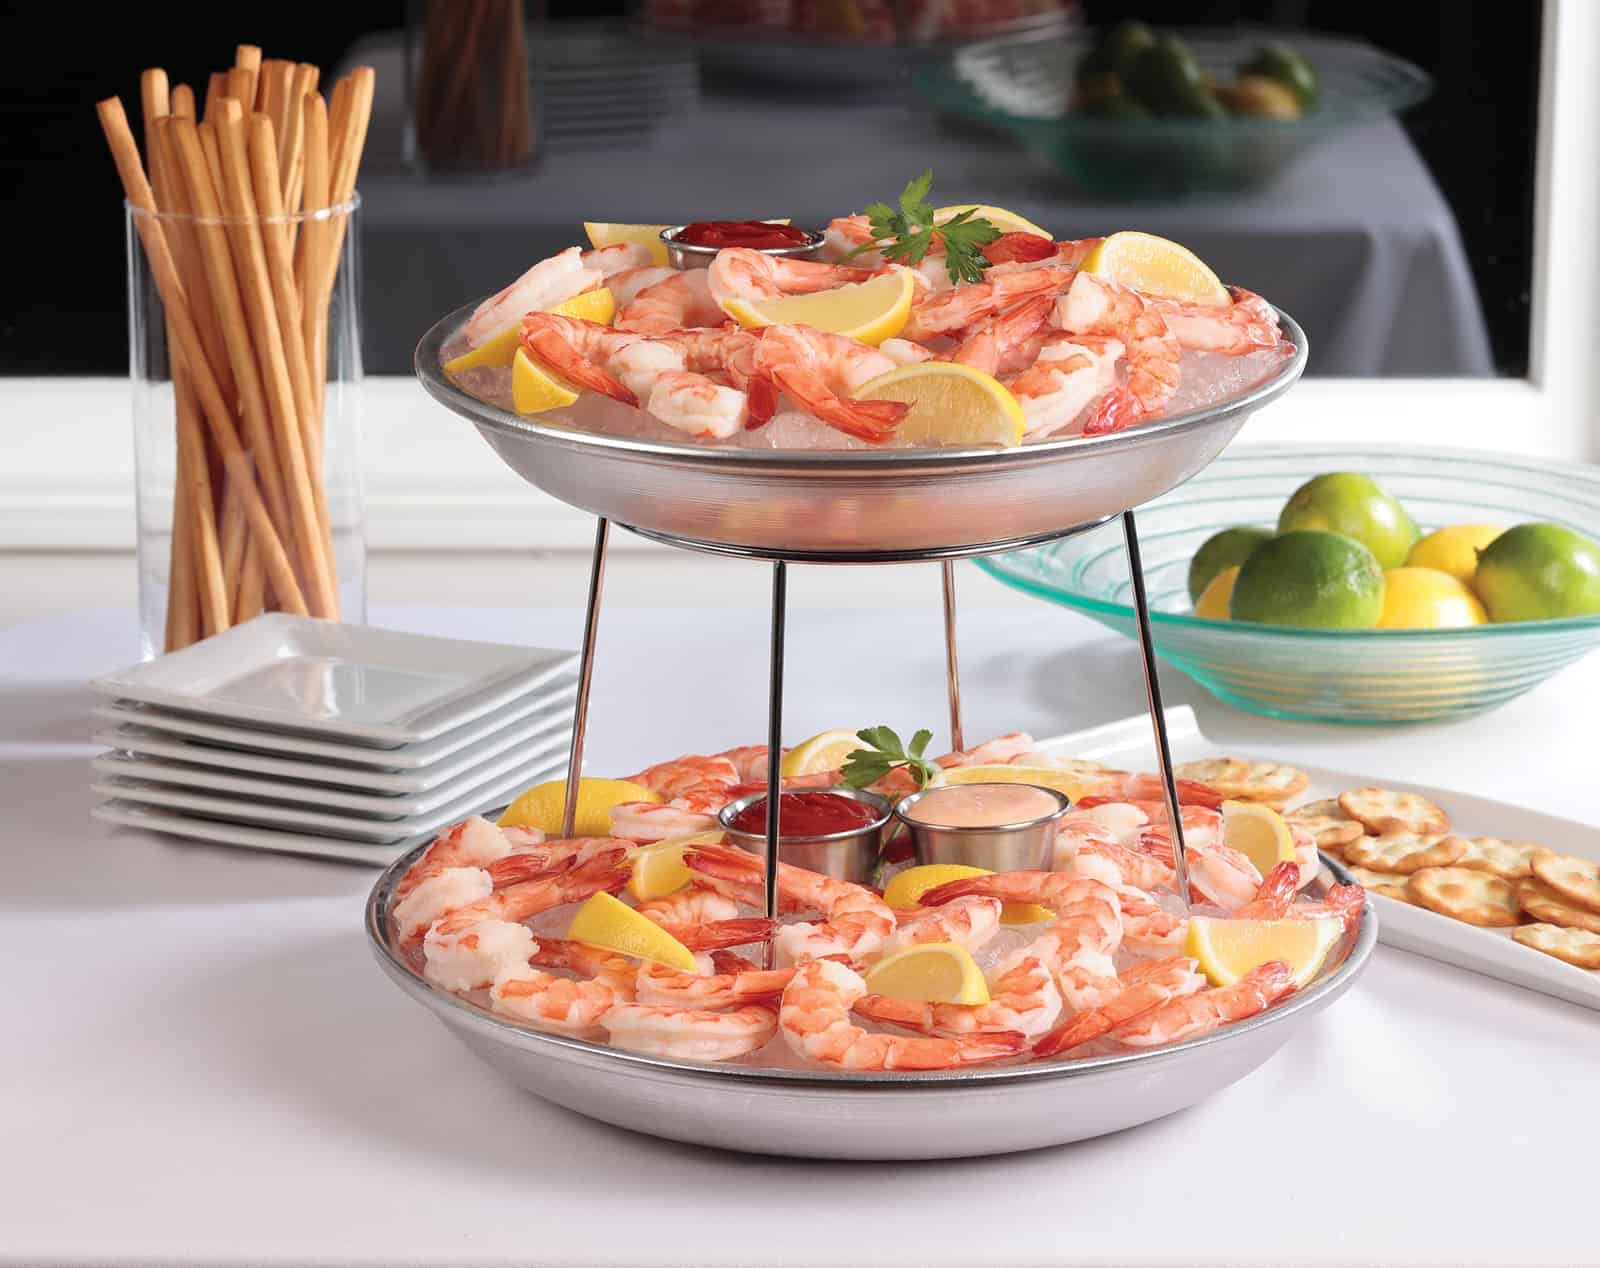 stainless steel kitchen racks locking cabinets seafood trays/stands aluminum trays | american ...